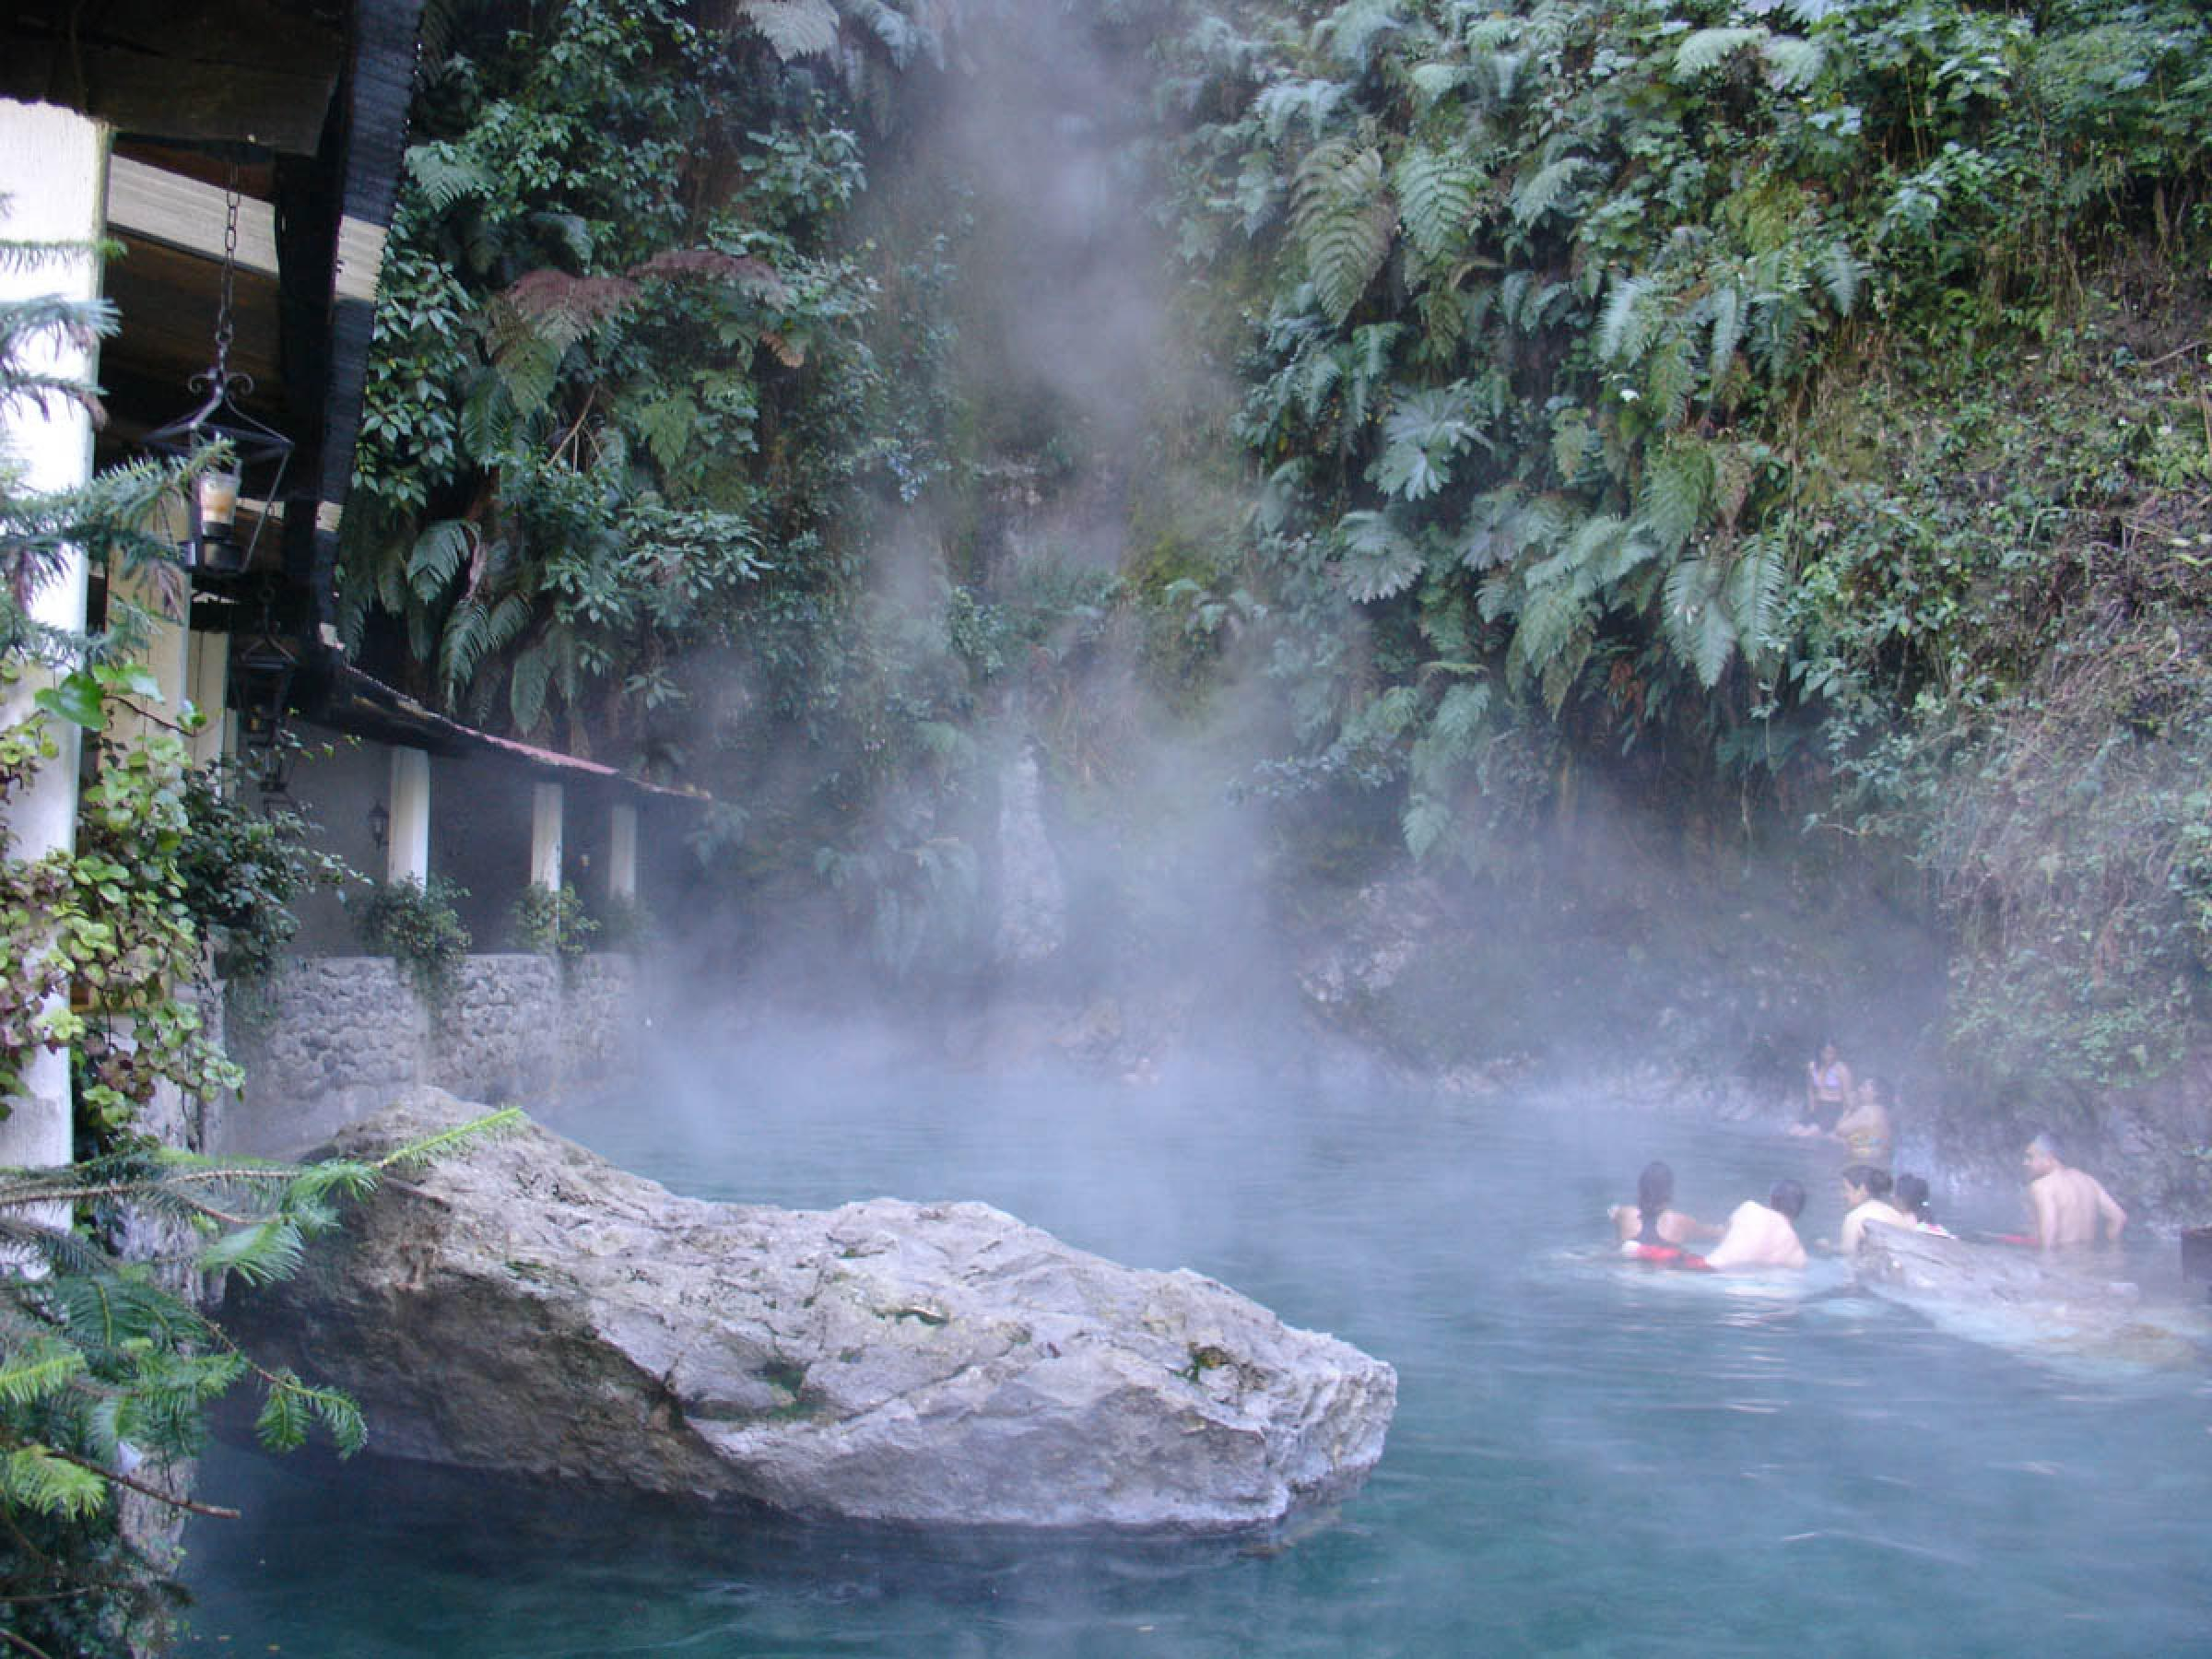 Hot Springs and Indigenous Villages